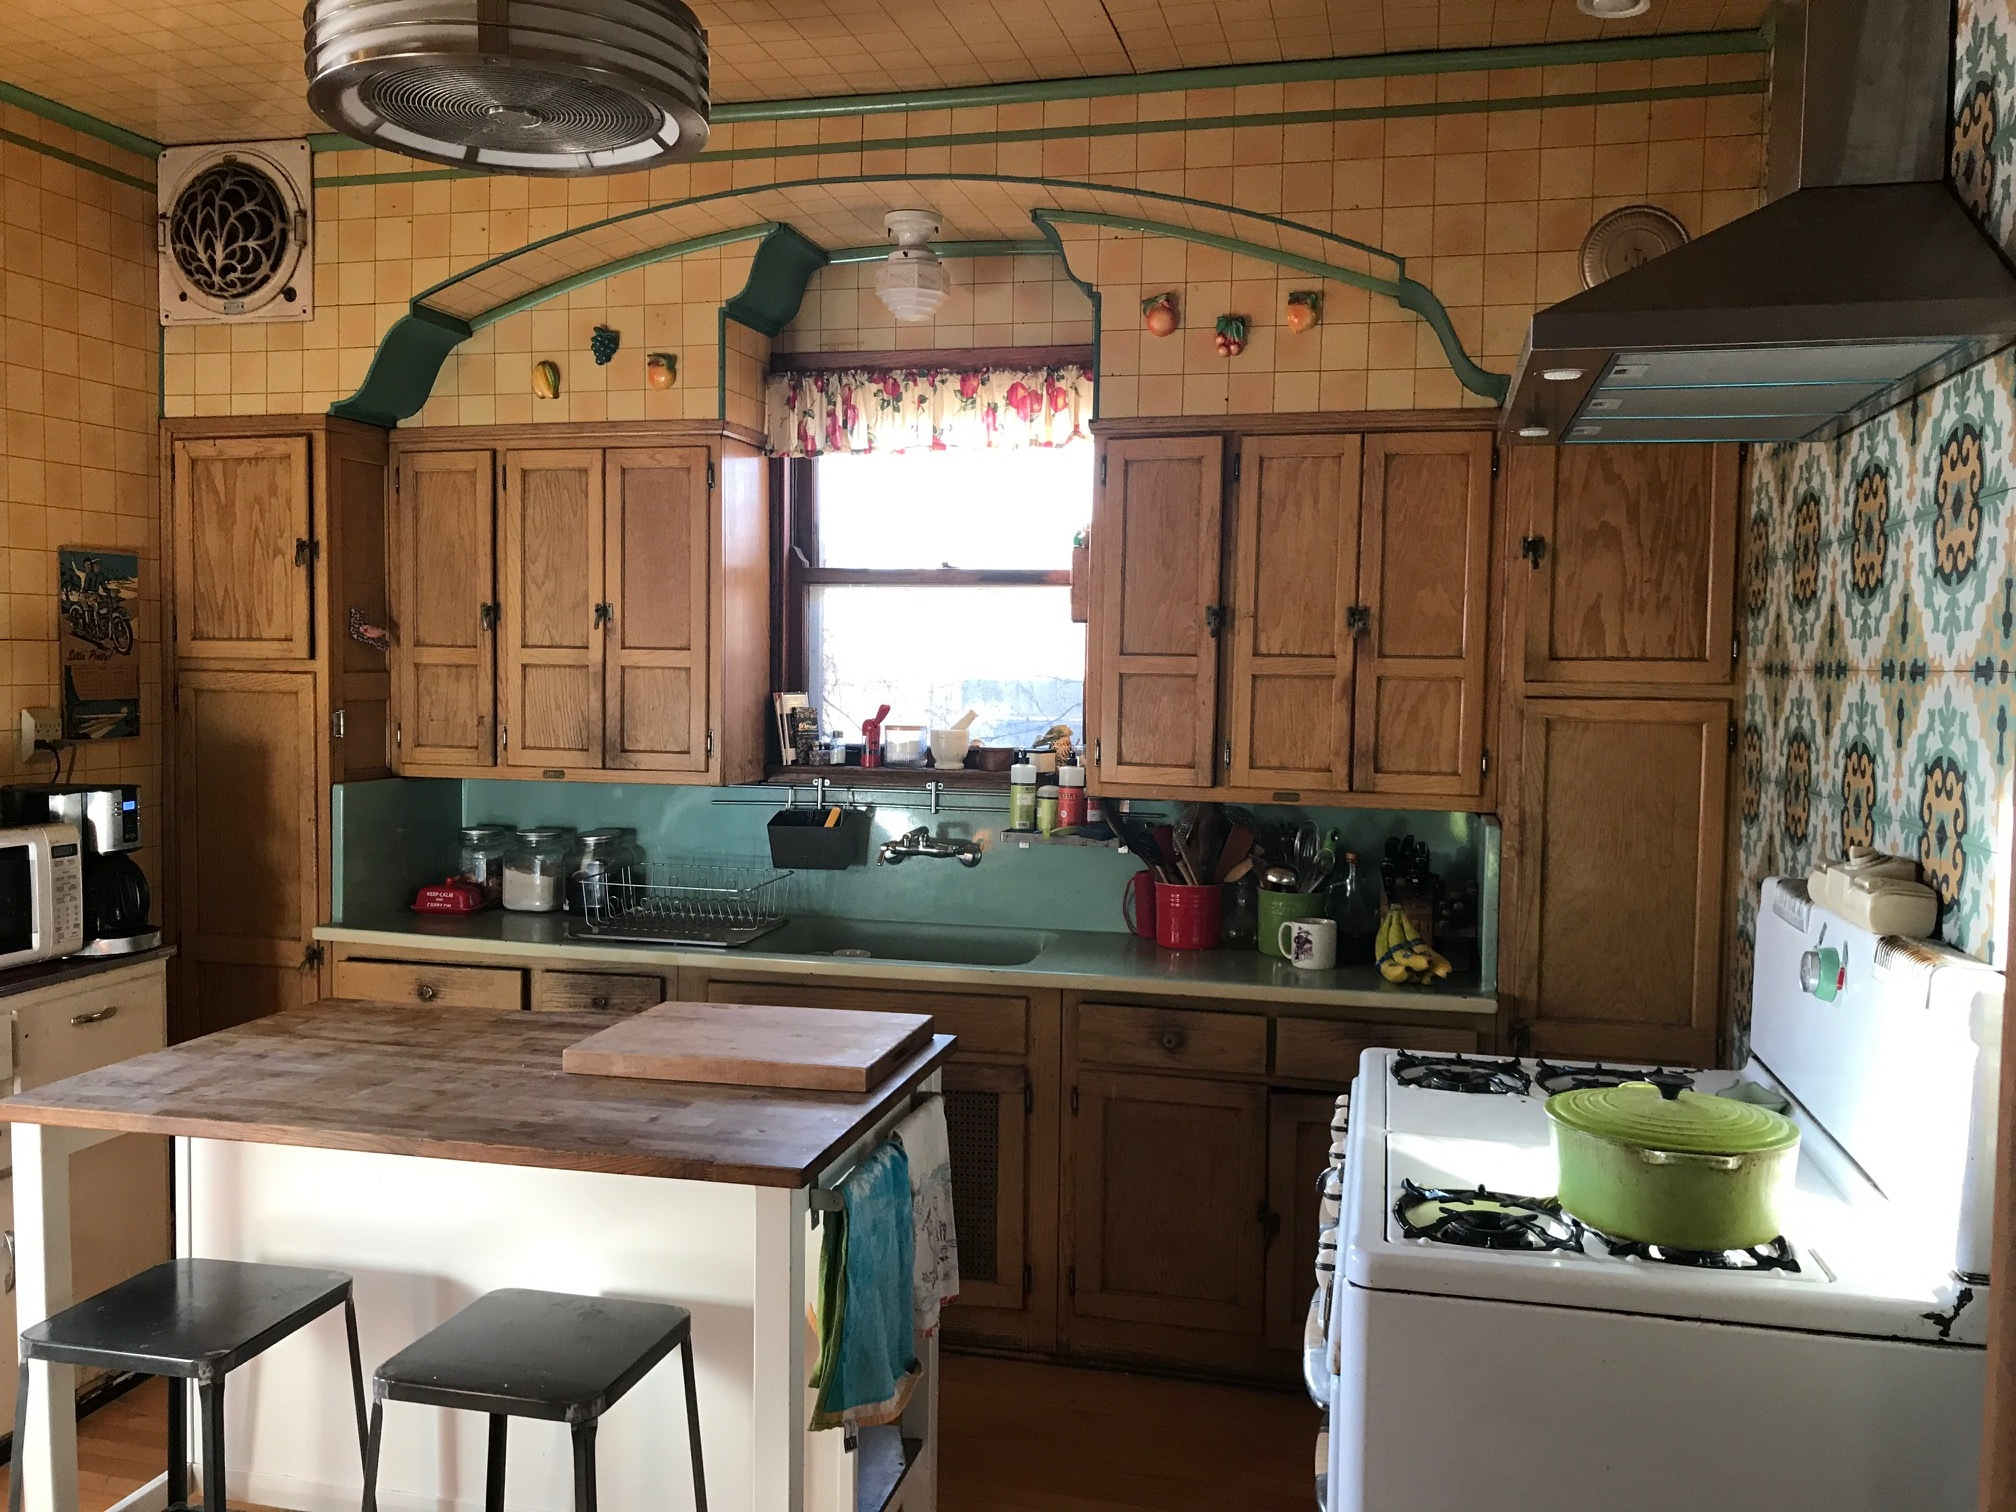 Sellers brand built-in cabinets in a stunning original Bungalow kitchen